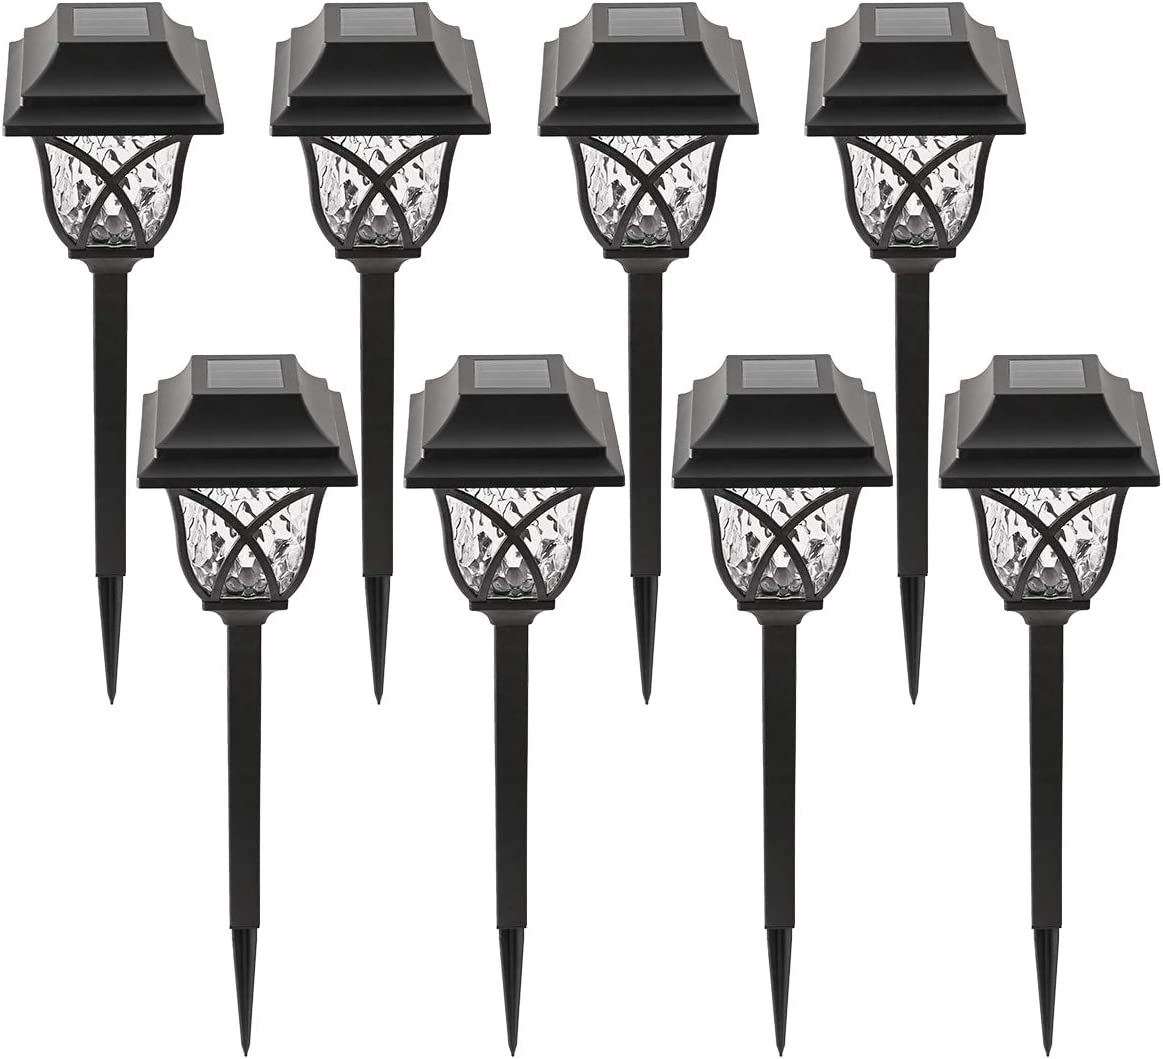 UNooMe Solar Path Light Outdoor -Garden Light with Super Bright,Waterproof led Lanscape pathlight Solar Powered Yard Light Suitable for Lawn,Patio,Yard,Garden,Walkway(8 Packs)